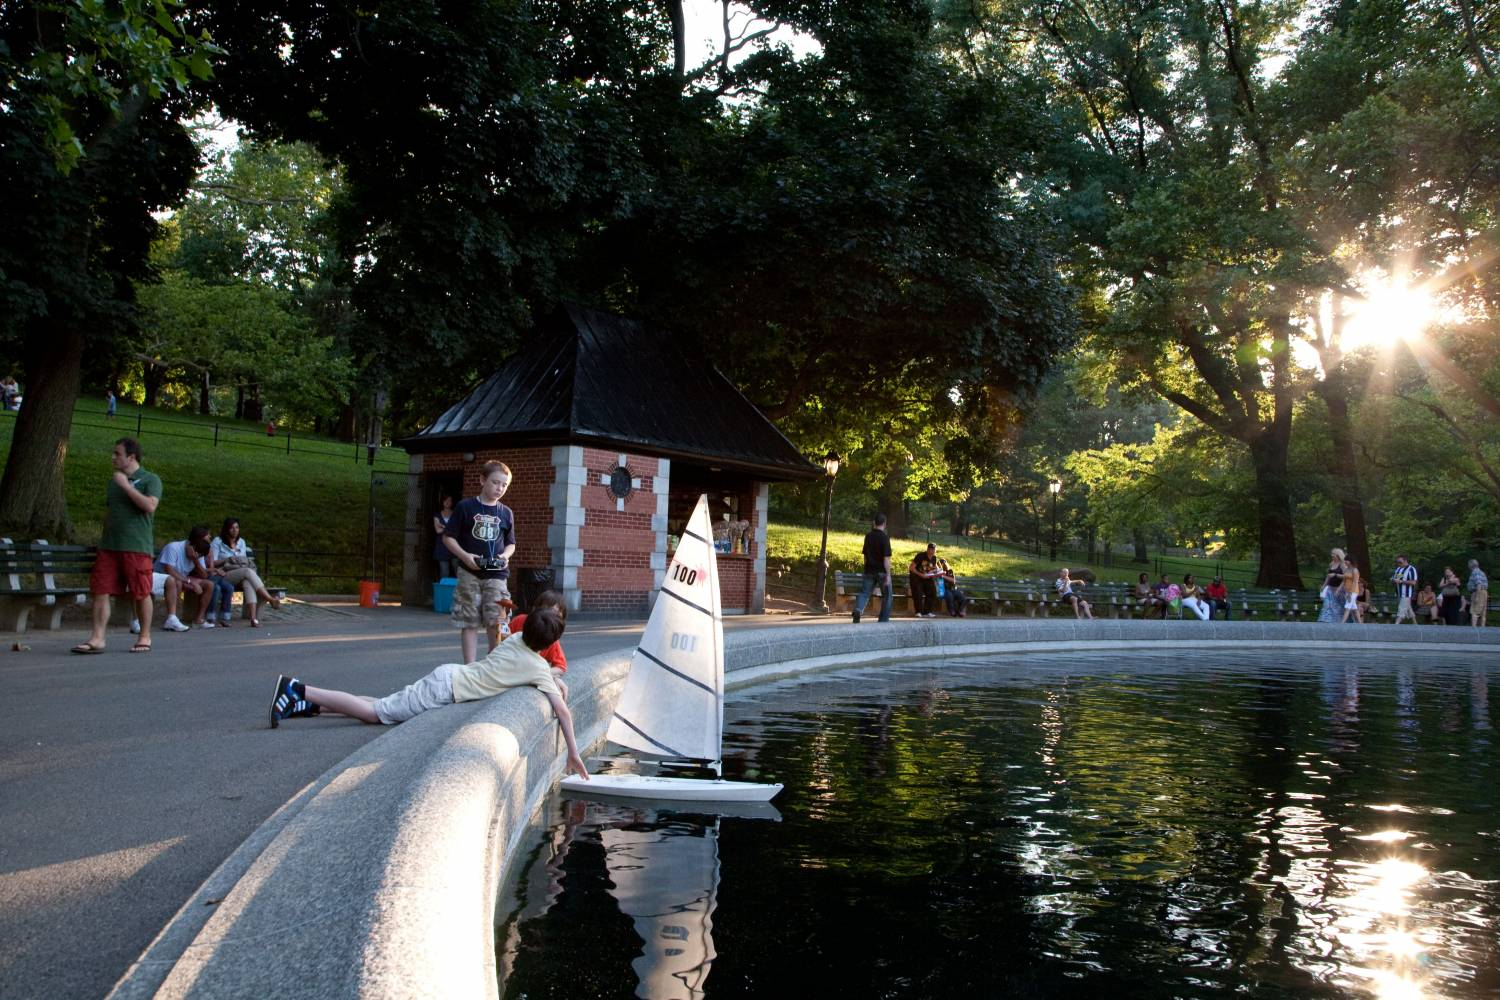 Central Park, toy boats